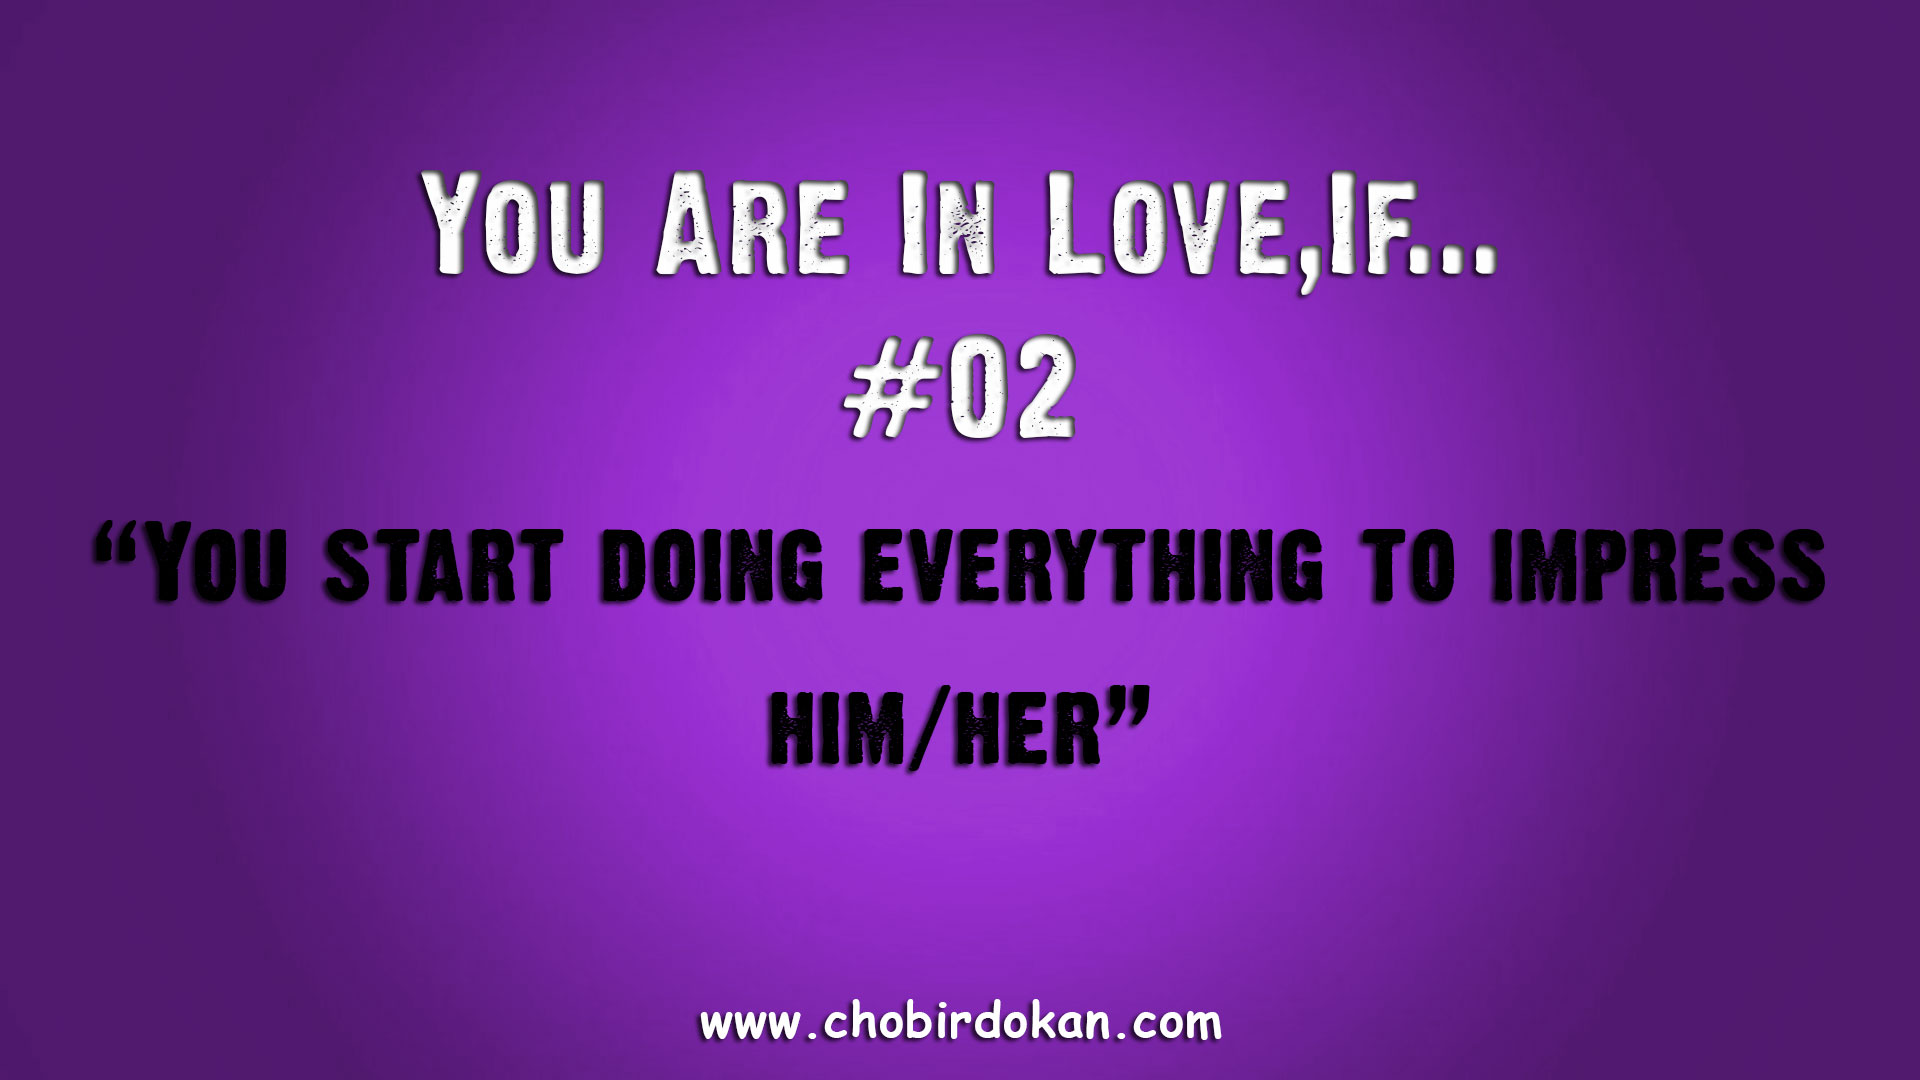 How Do You Grasp That You Are Inlove